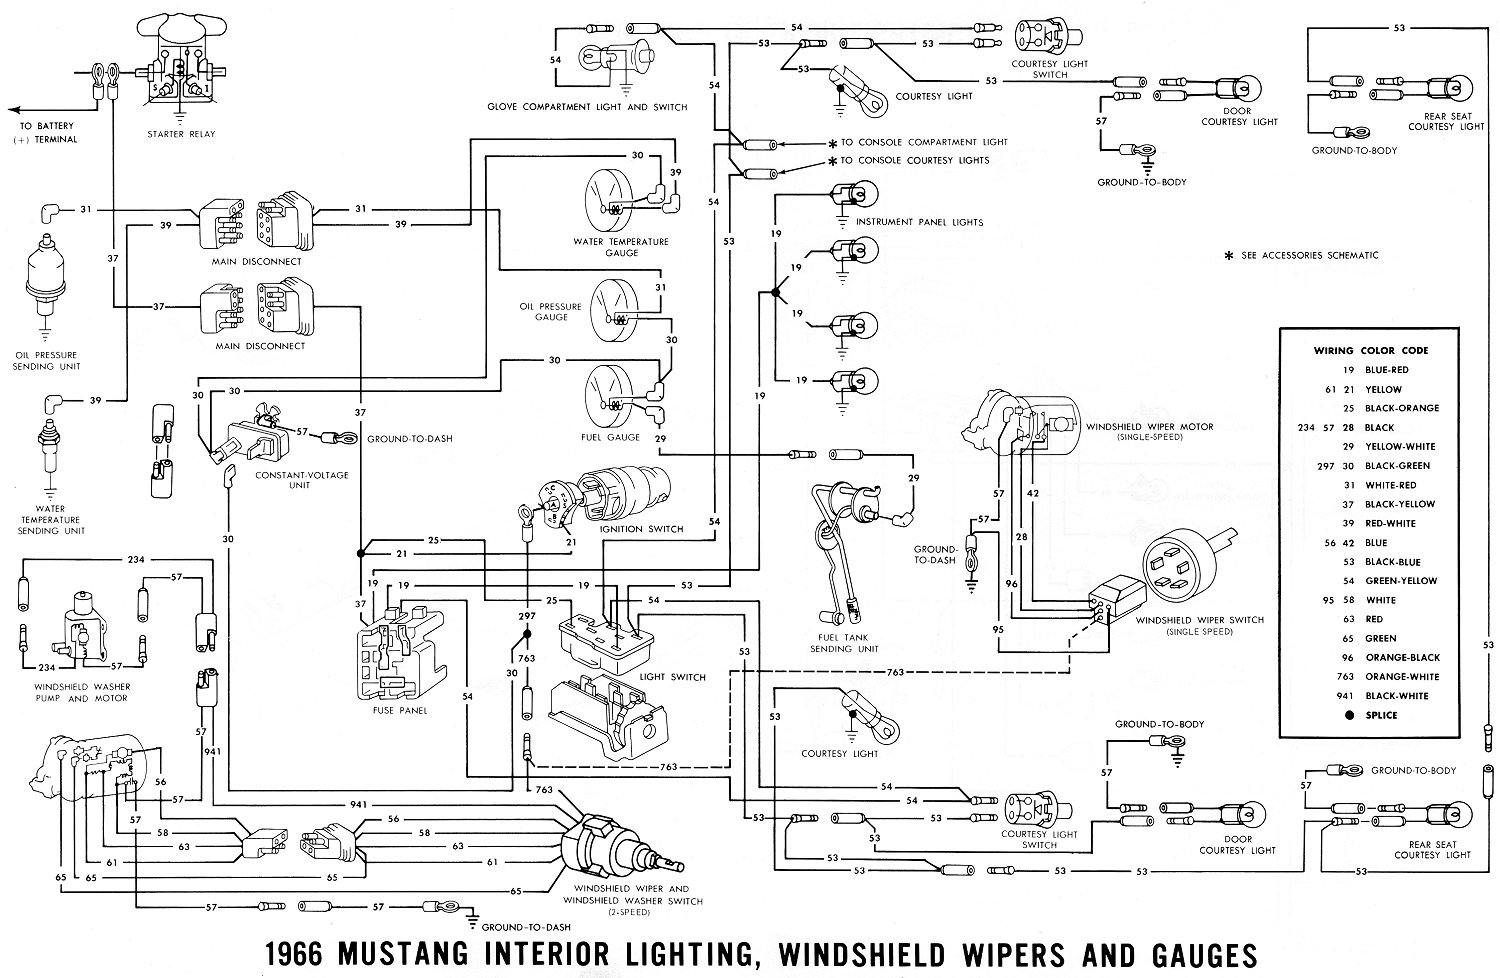 66inter1 1966 mustang wiring diagrams average joe restoration 1965 mustang engine wiring harness at virtualis.co